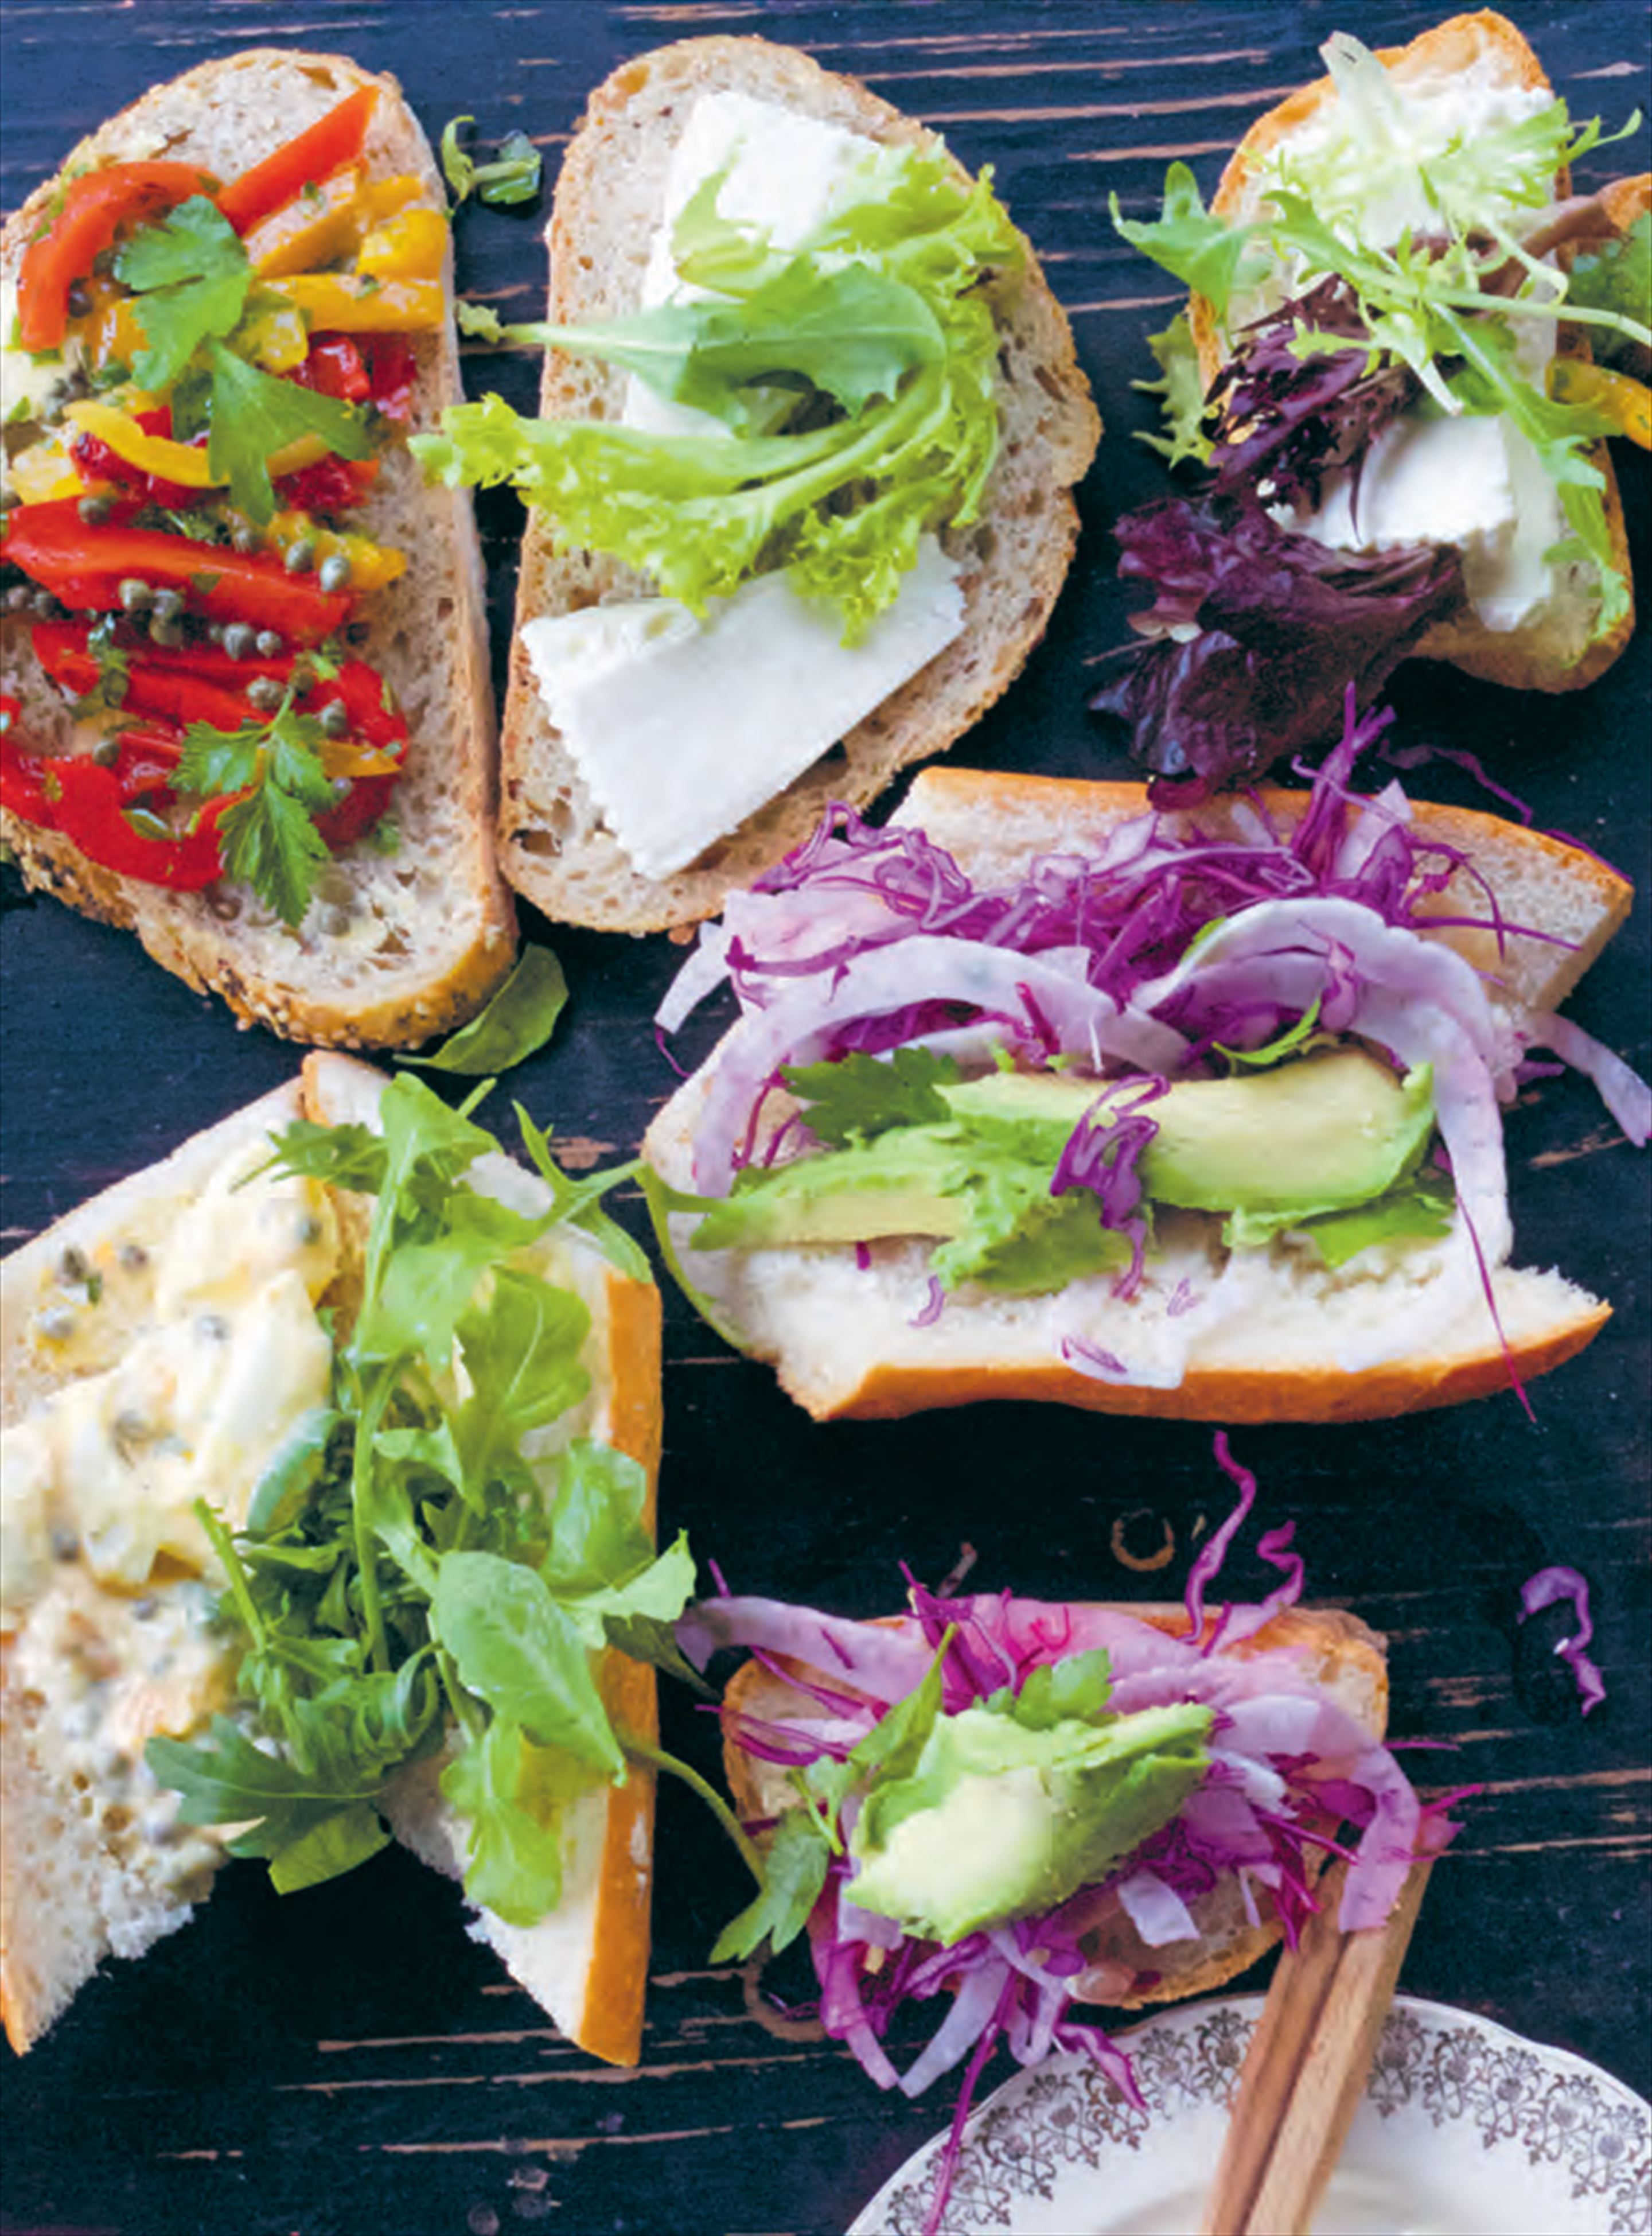 Fennel slaw + avocado sandwiches